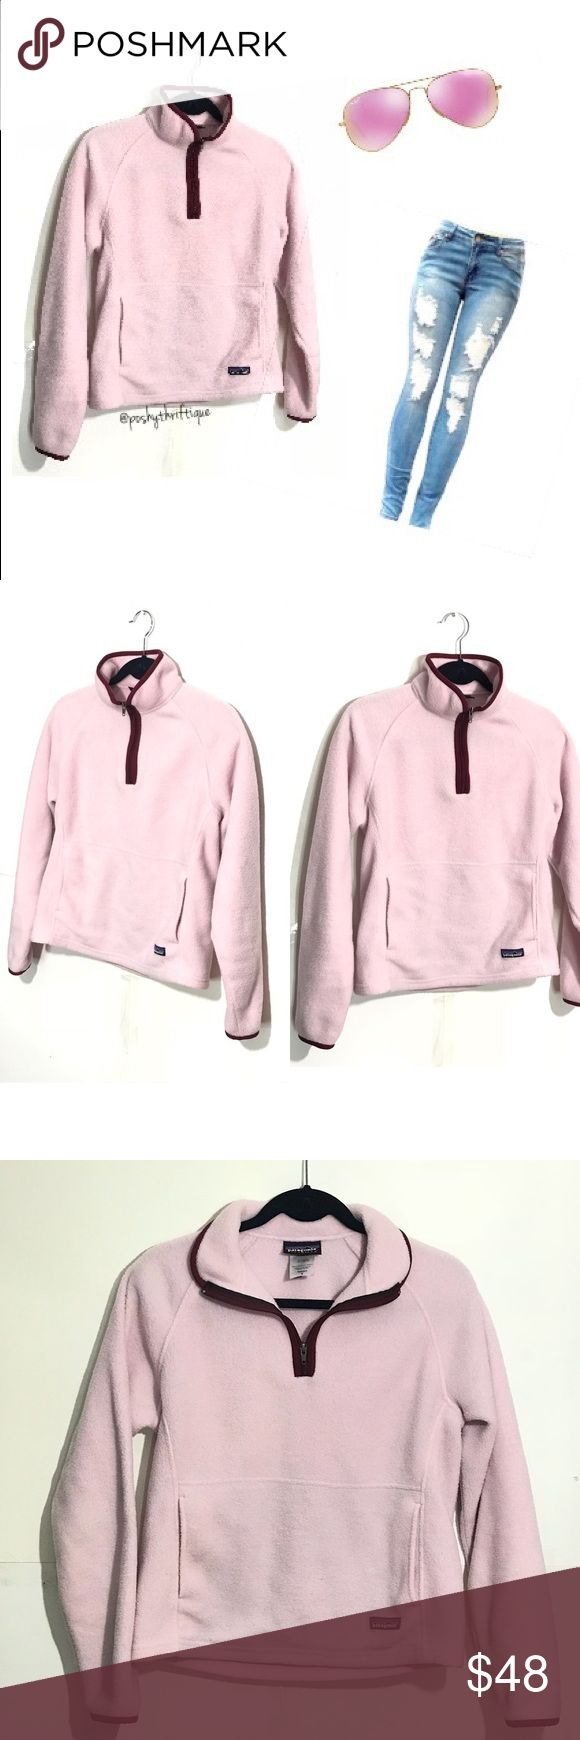 "Patagonia Womens Pink Long Sleeve Zipper Pullover SIZE: small  STYLE: outdoors  BRAND: Patagonia  MATERIAL: polyester  COLOR: pink with burgundy trim  MEASUREMENTS:  Length :Approx  23"" Underarm To Underarm : Approx 18"" Bust : Approx 36"" Sleeve : Approx 28"" CONDITION : Great Pre Loved Condition  COUNTRY OF MANUFACTURER : Mexico  SMOKE FREE & PET FREE ENVIRONMENT Patagonia Jackets & Coats"